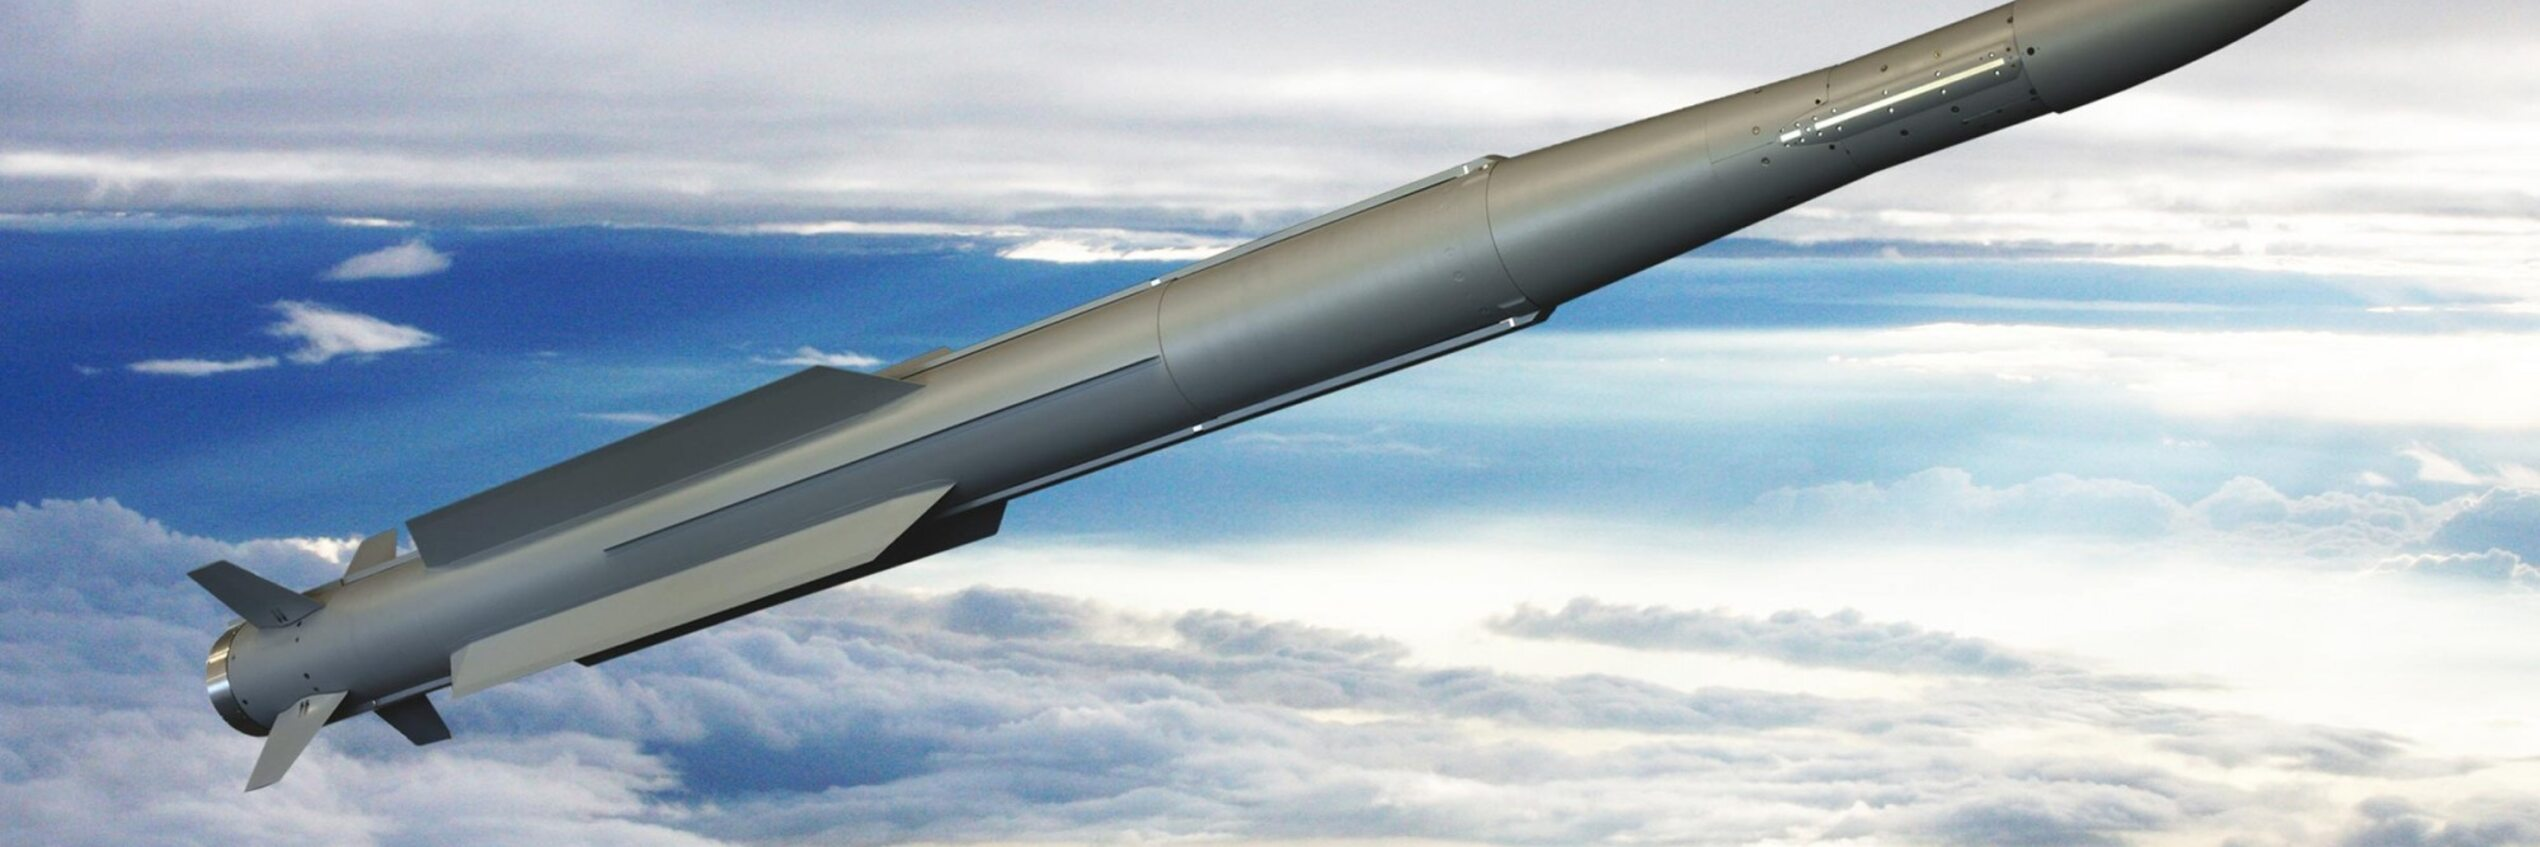 IRIS-T SL, surface-to-air guided missile medium range